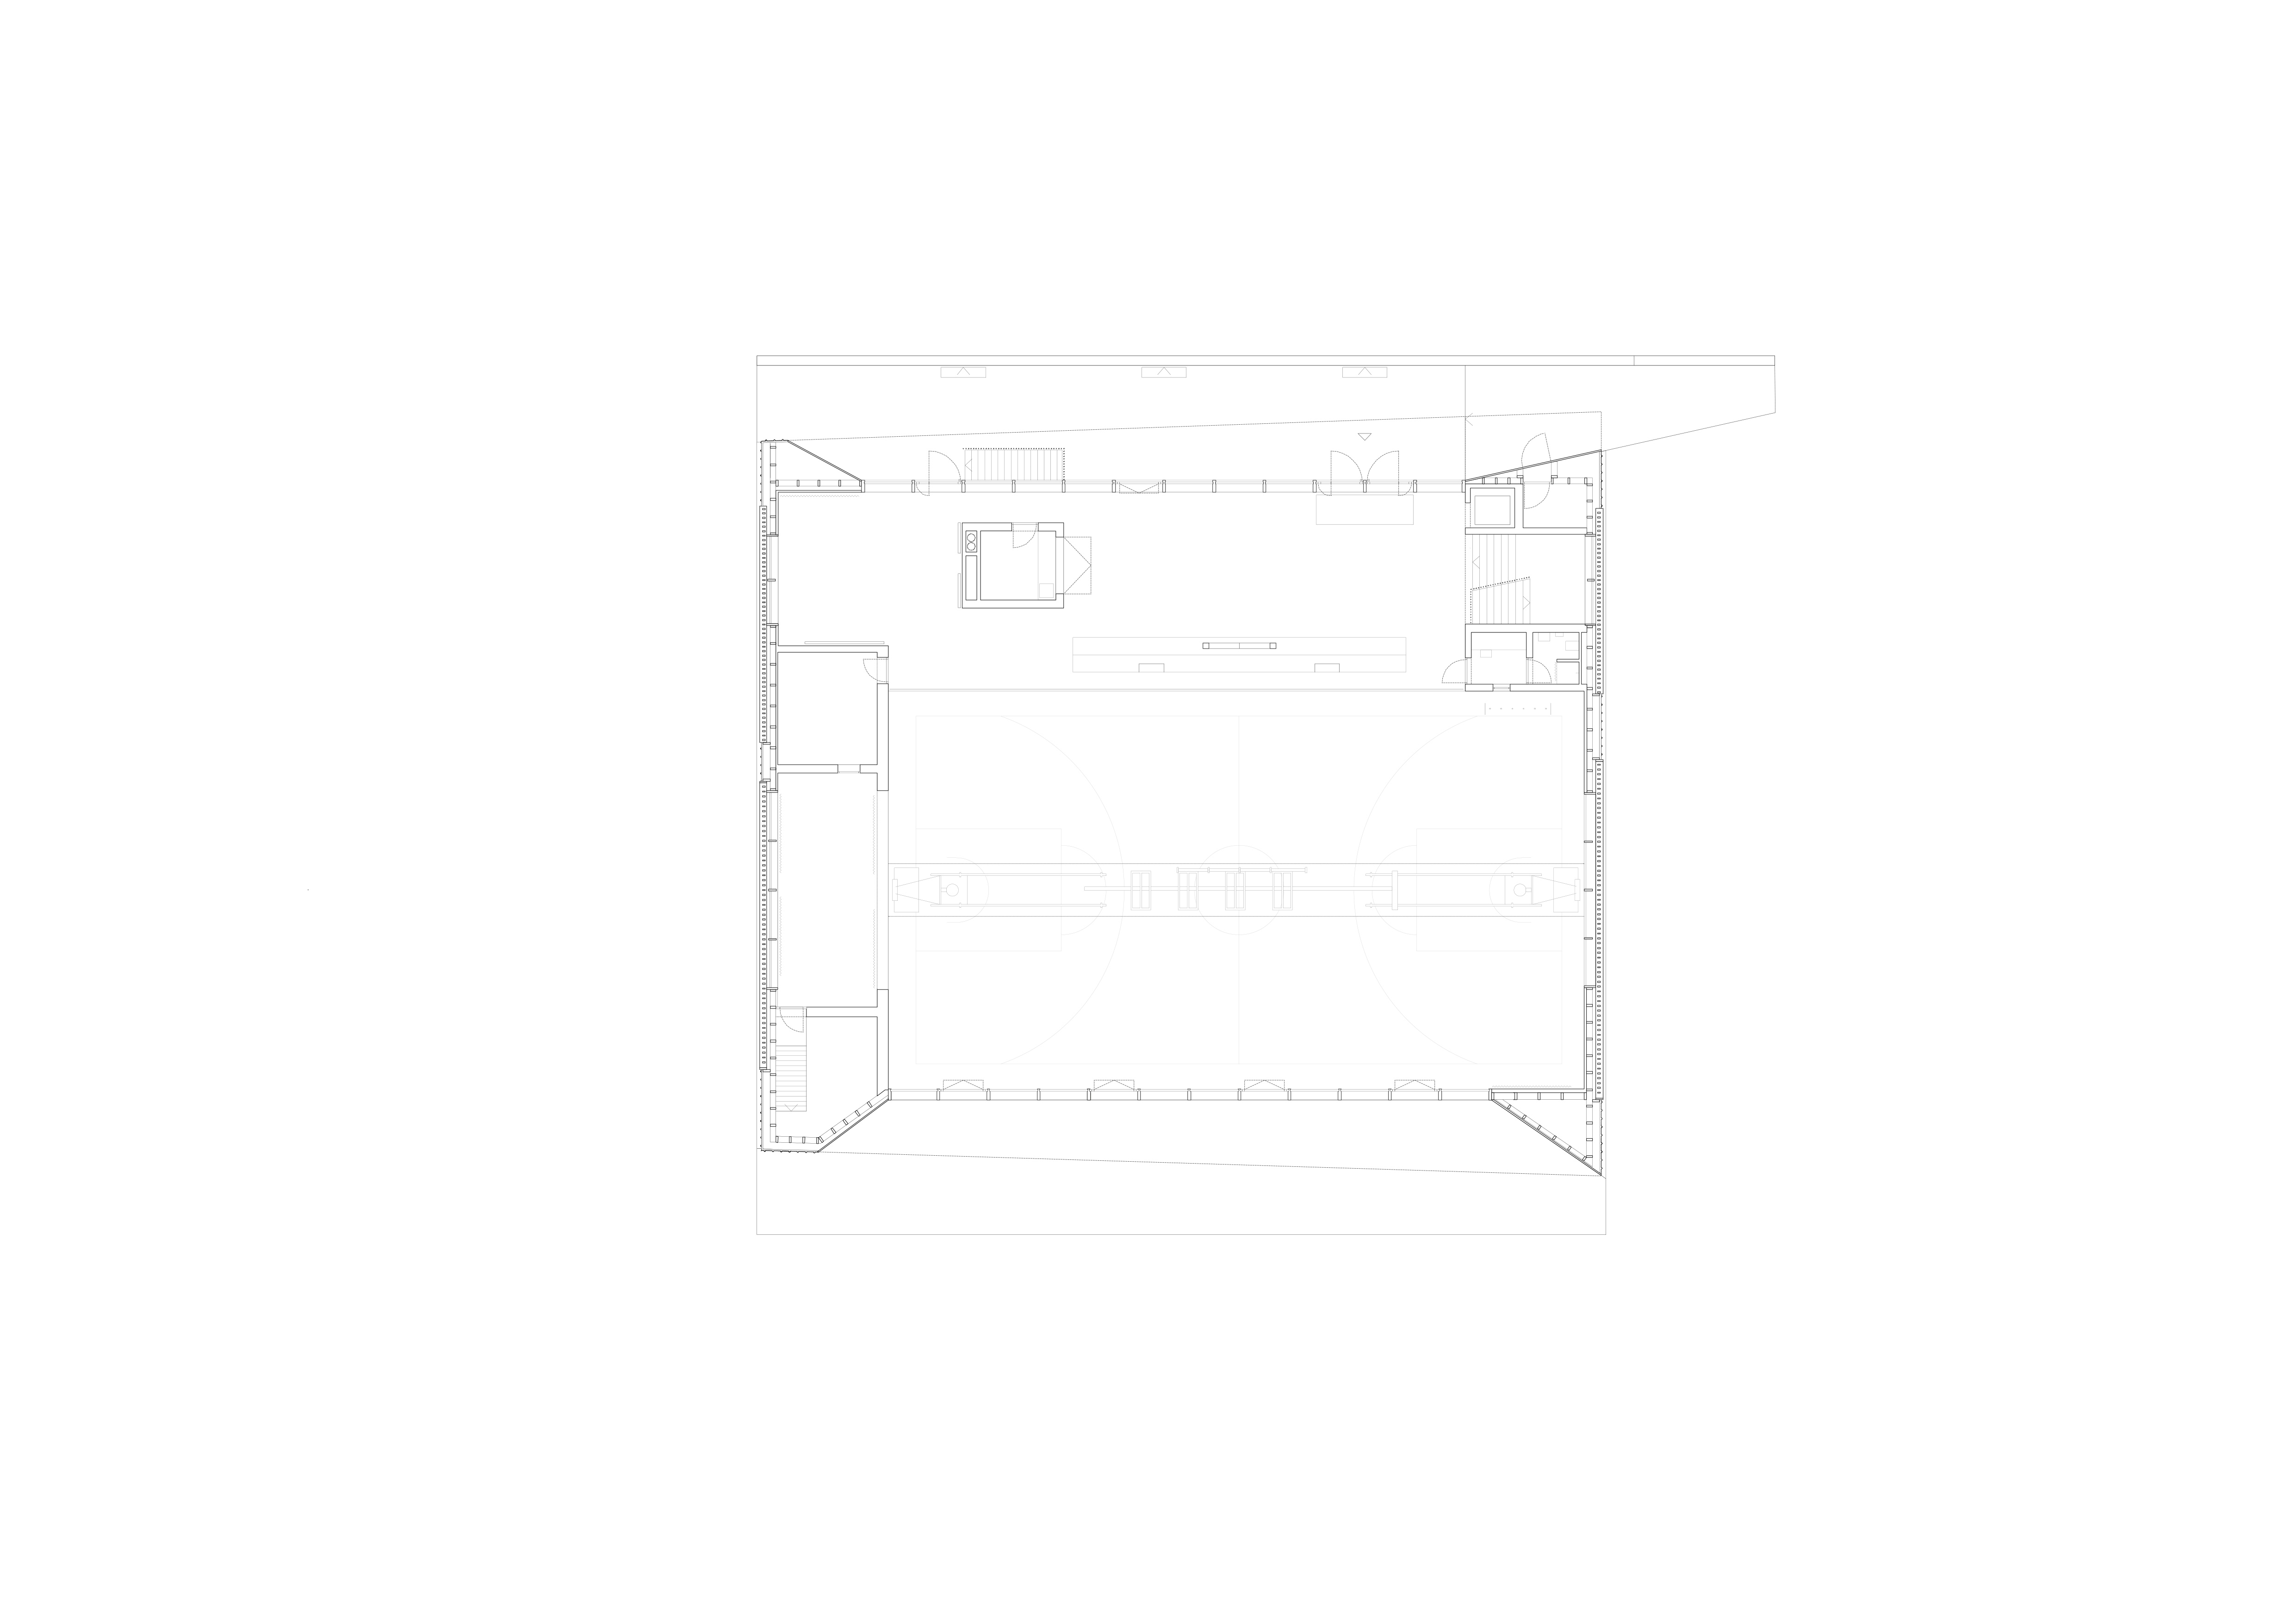 LeVD2_EXE_Layout A3_salle rez_200